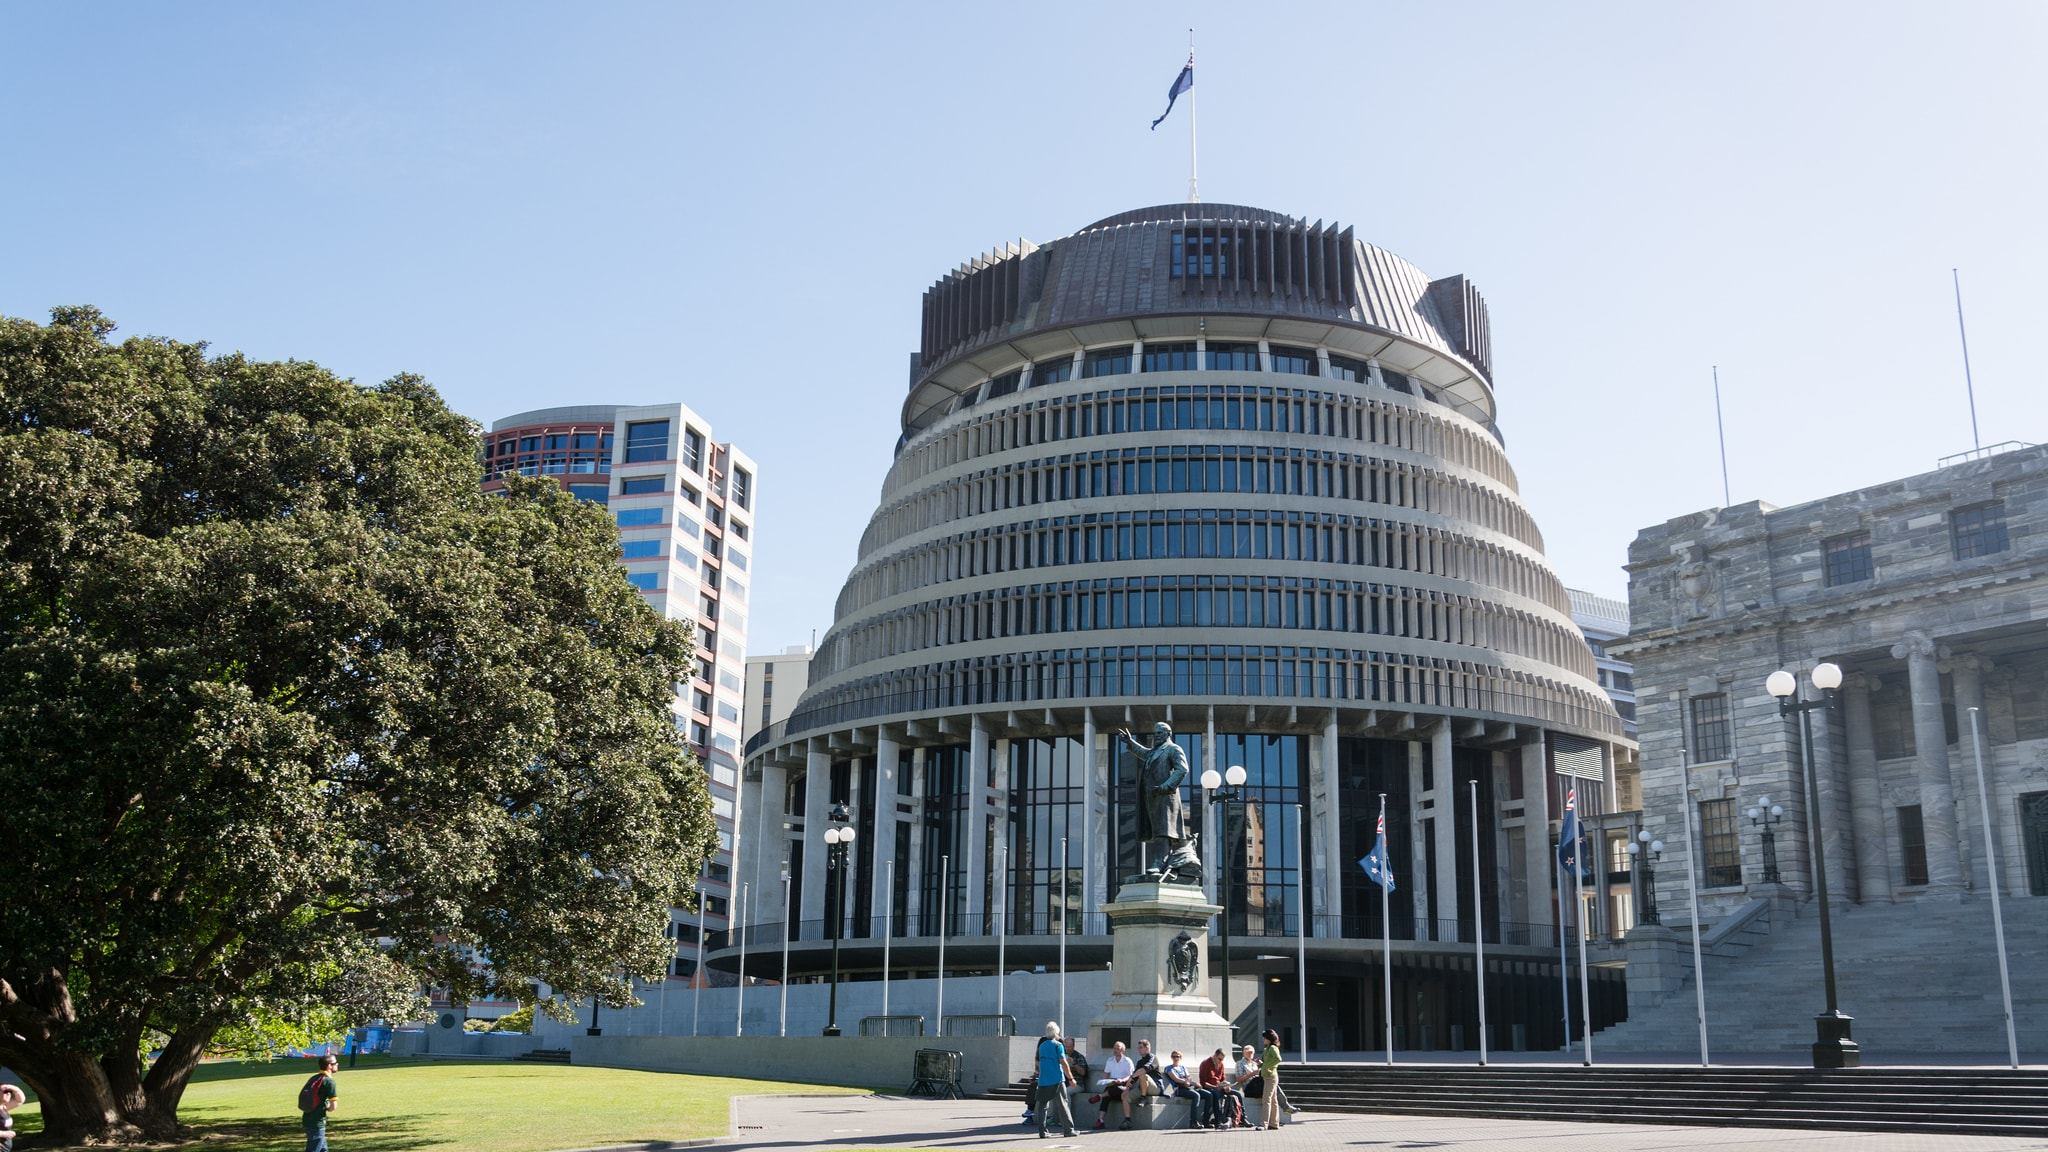 The Beehive: New Zealand's Most Striking Parliment Building